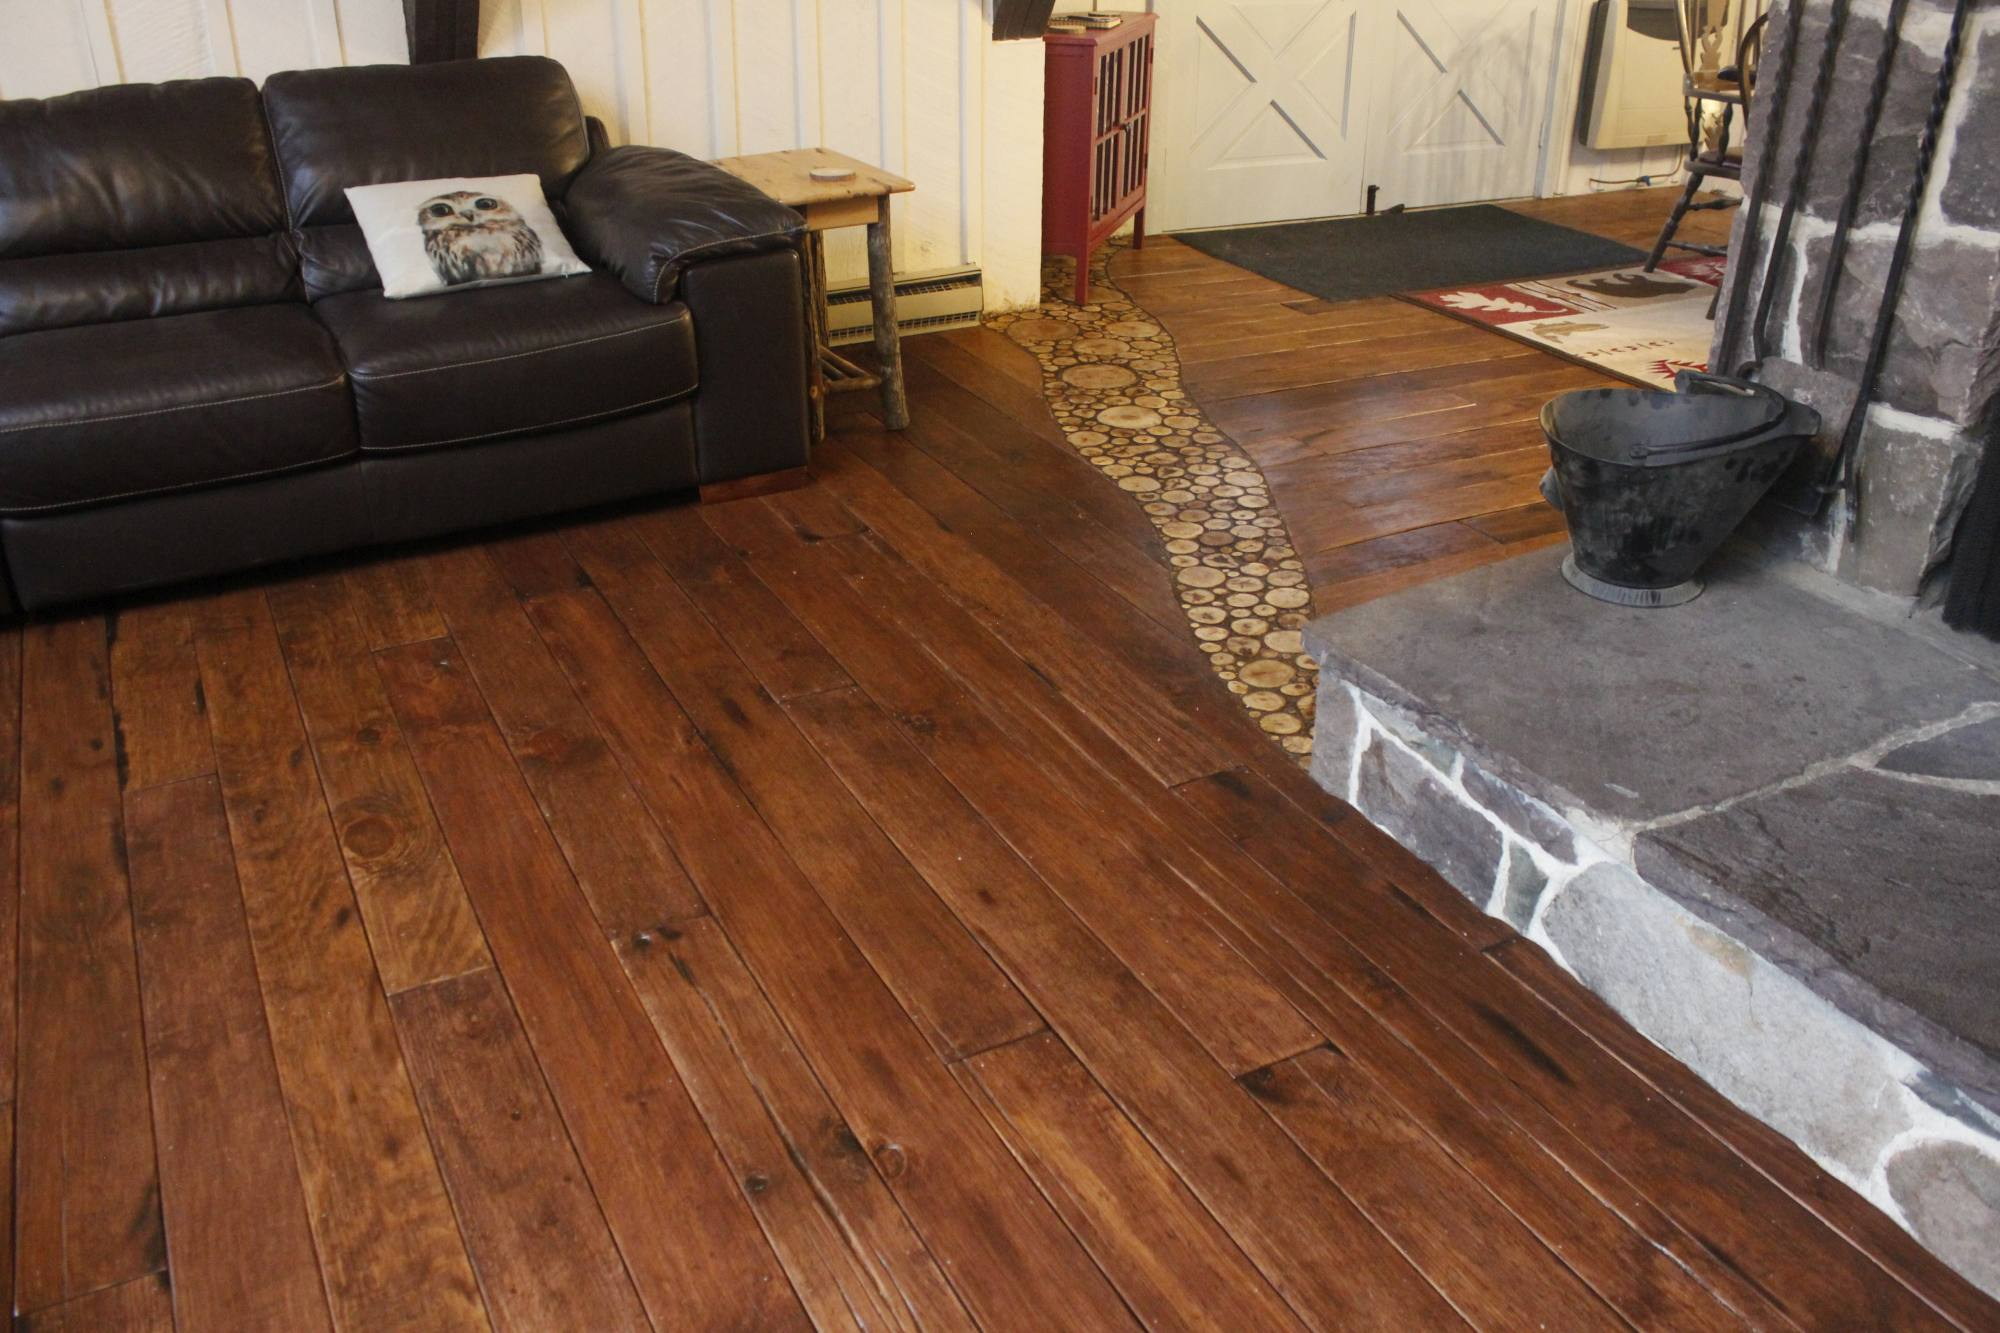 DIY Farmhouse Wide Plank Flooring Made From Plywood - The Plywood Floor In The Living Room By The Wood Accent